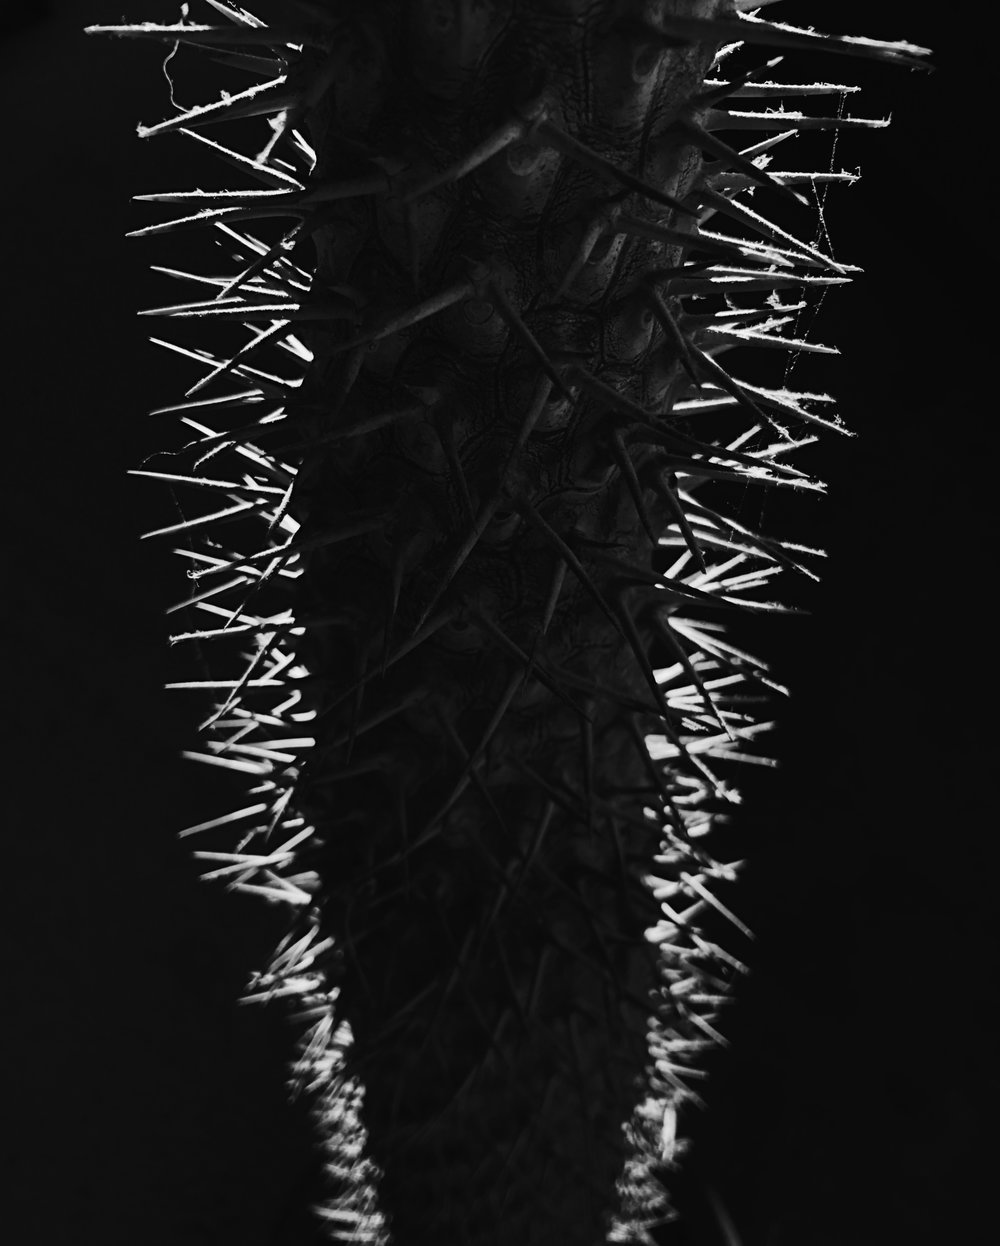 Spines, Chicago, 1/8/2017